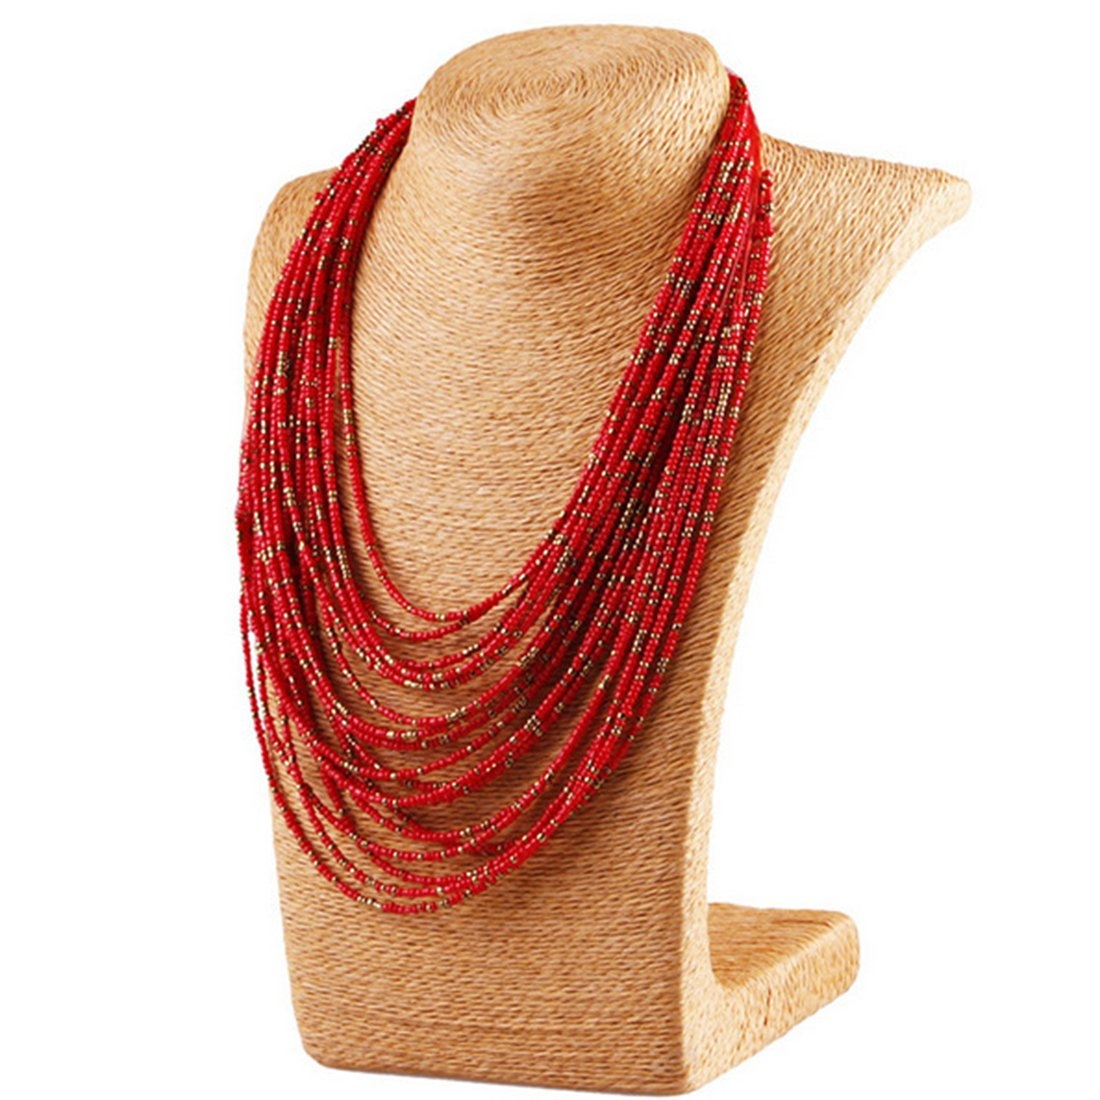 Mecoo Multicolor Bohemia Style Retro Strand Necklace Multilayer Drop Chain Necklace for Women (Red) by ME COO